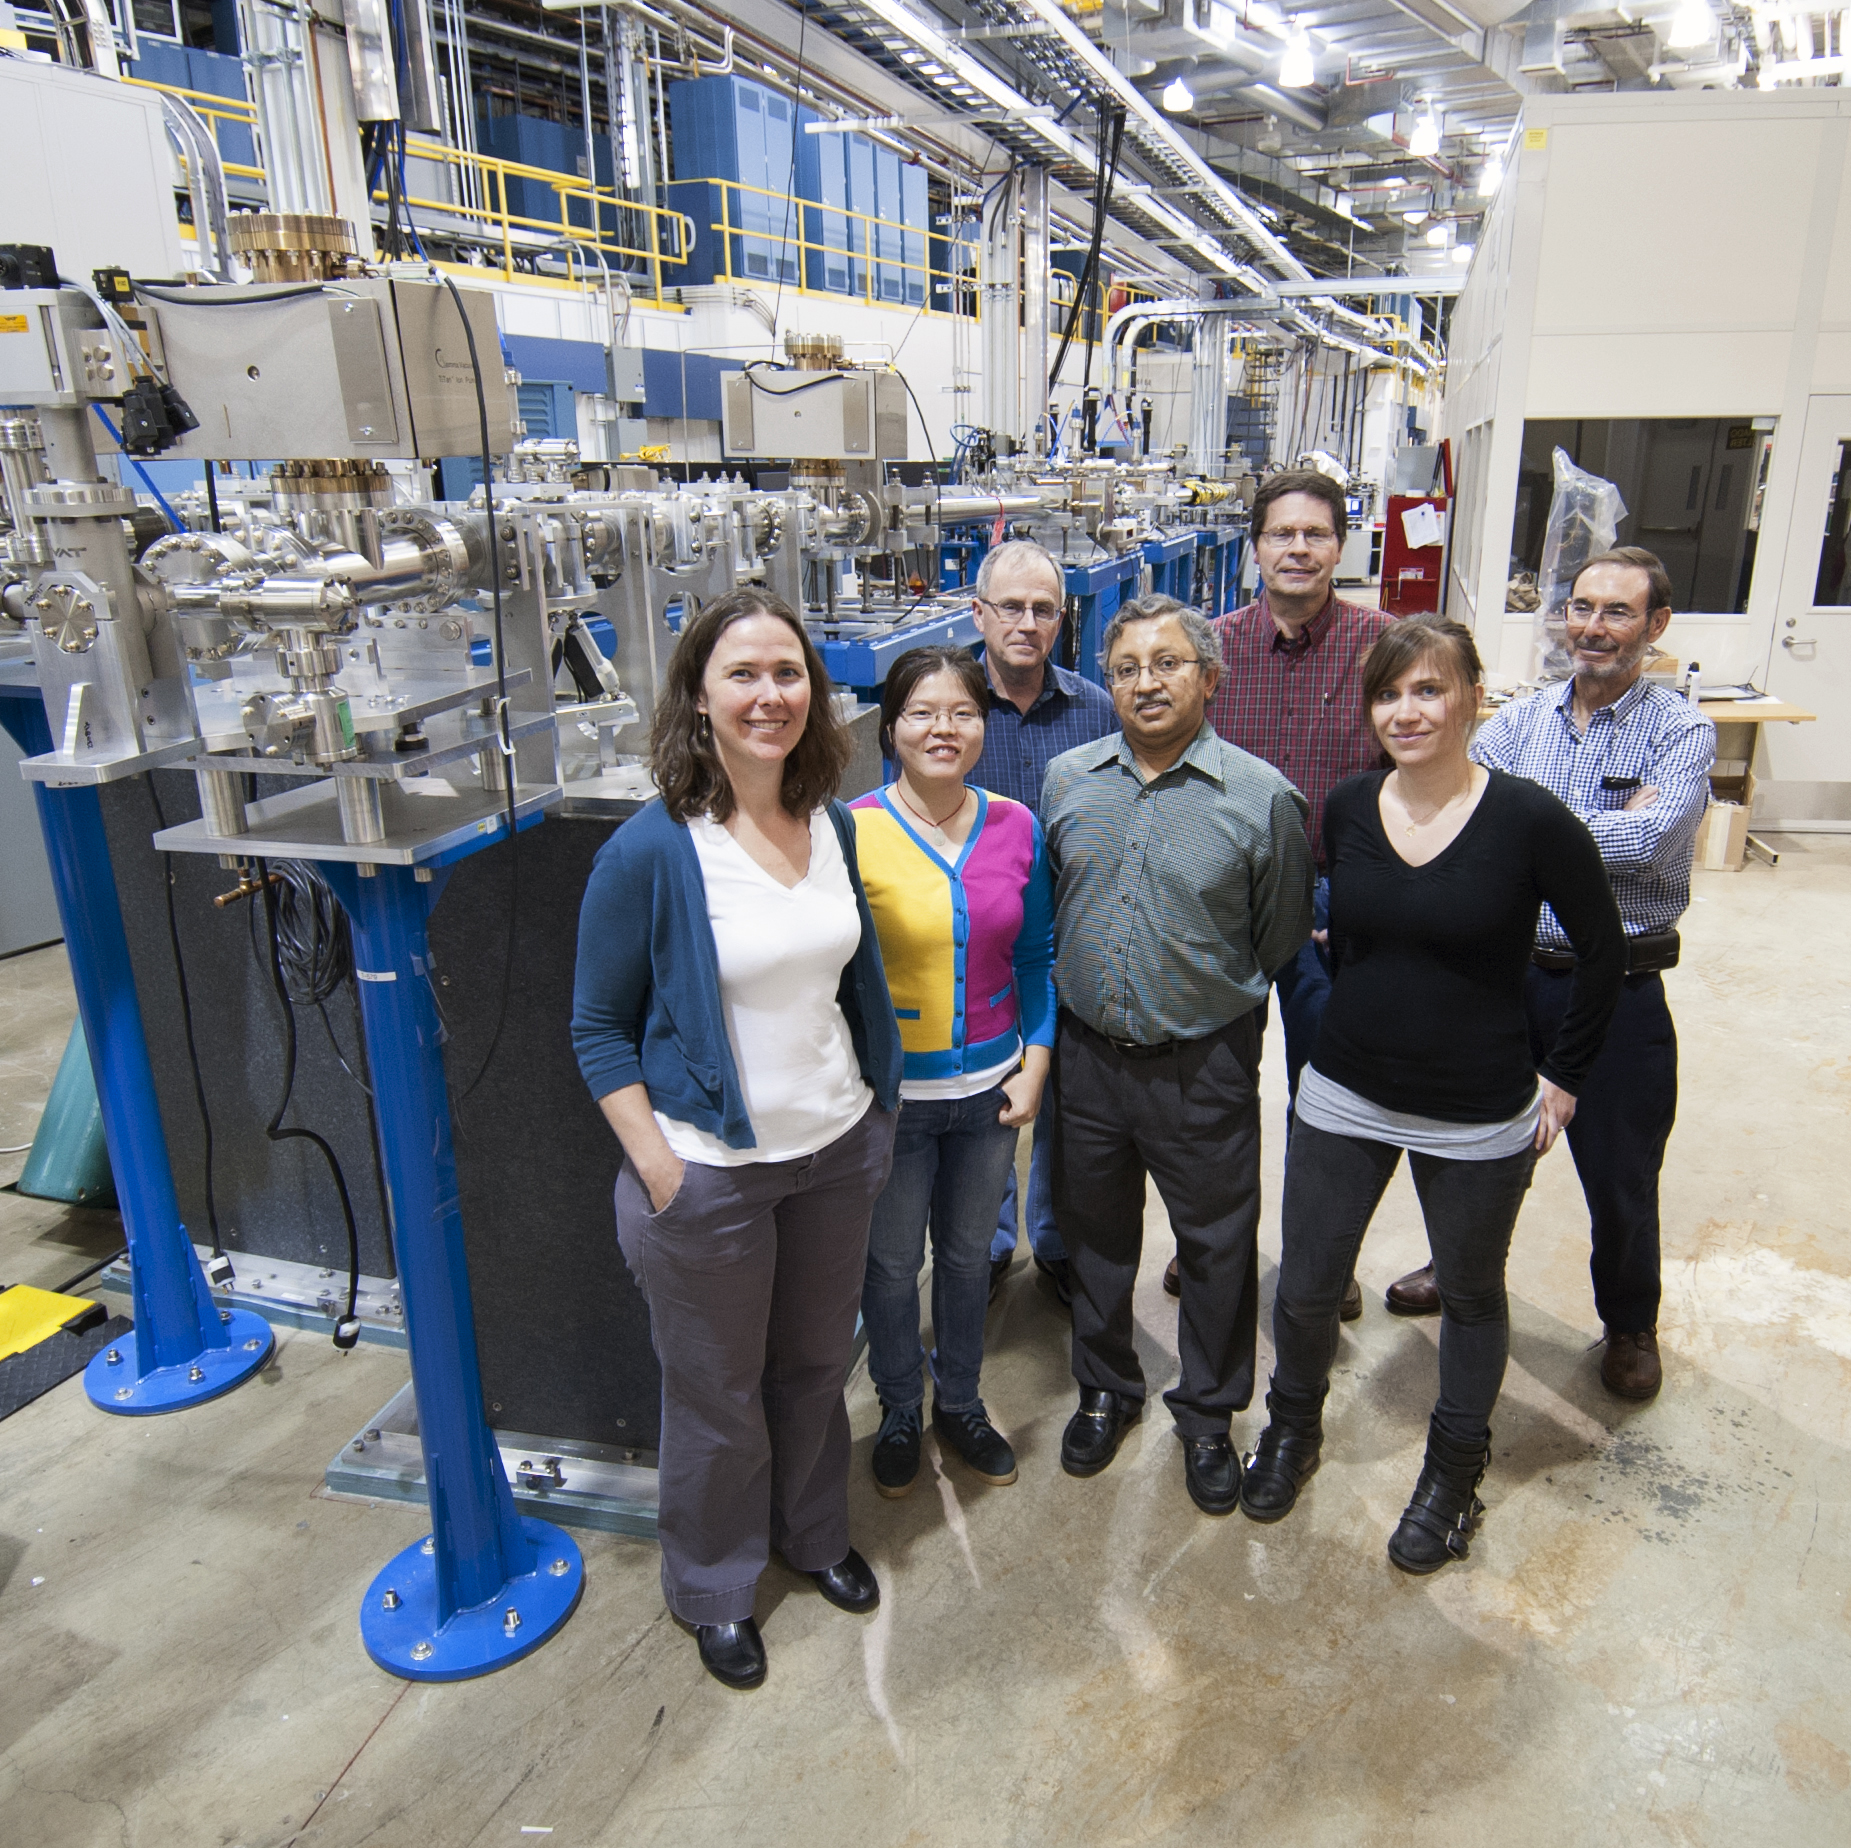 Members of the Intermediate Energy X-ray collaborative development team standing in front of the beamline. Left to right: Jessica McChesney, Yizhi Fang, Tim Roberts, Mohan Ramanathan, Mike Fisher, Fanny Rodolakis, and Ruben Reininger.